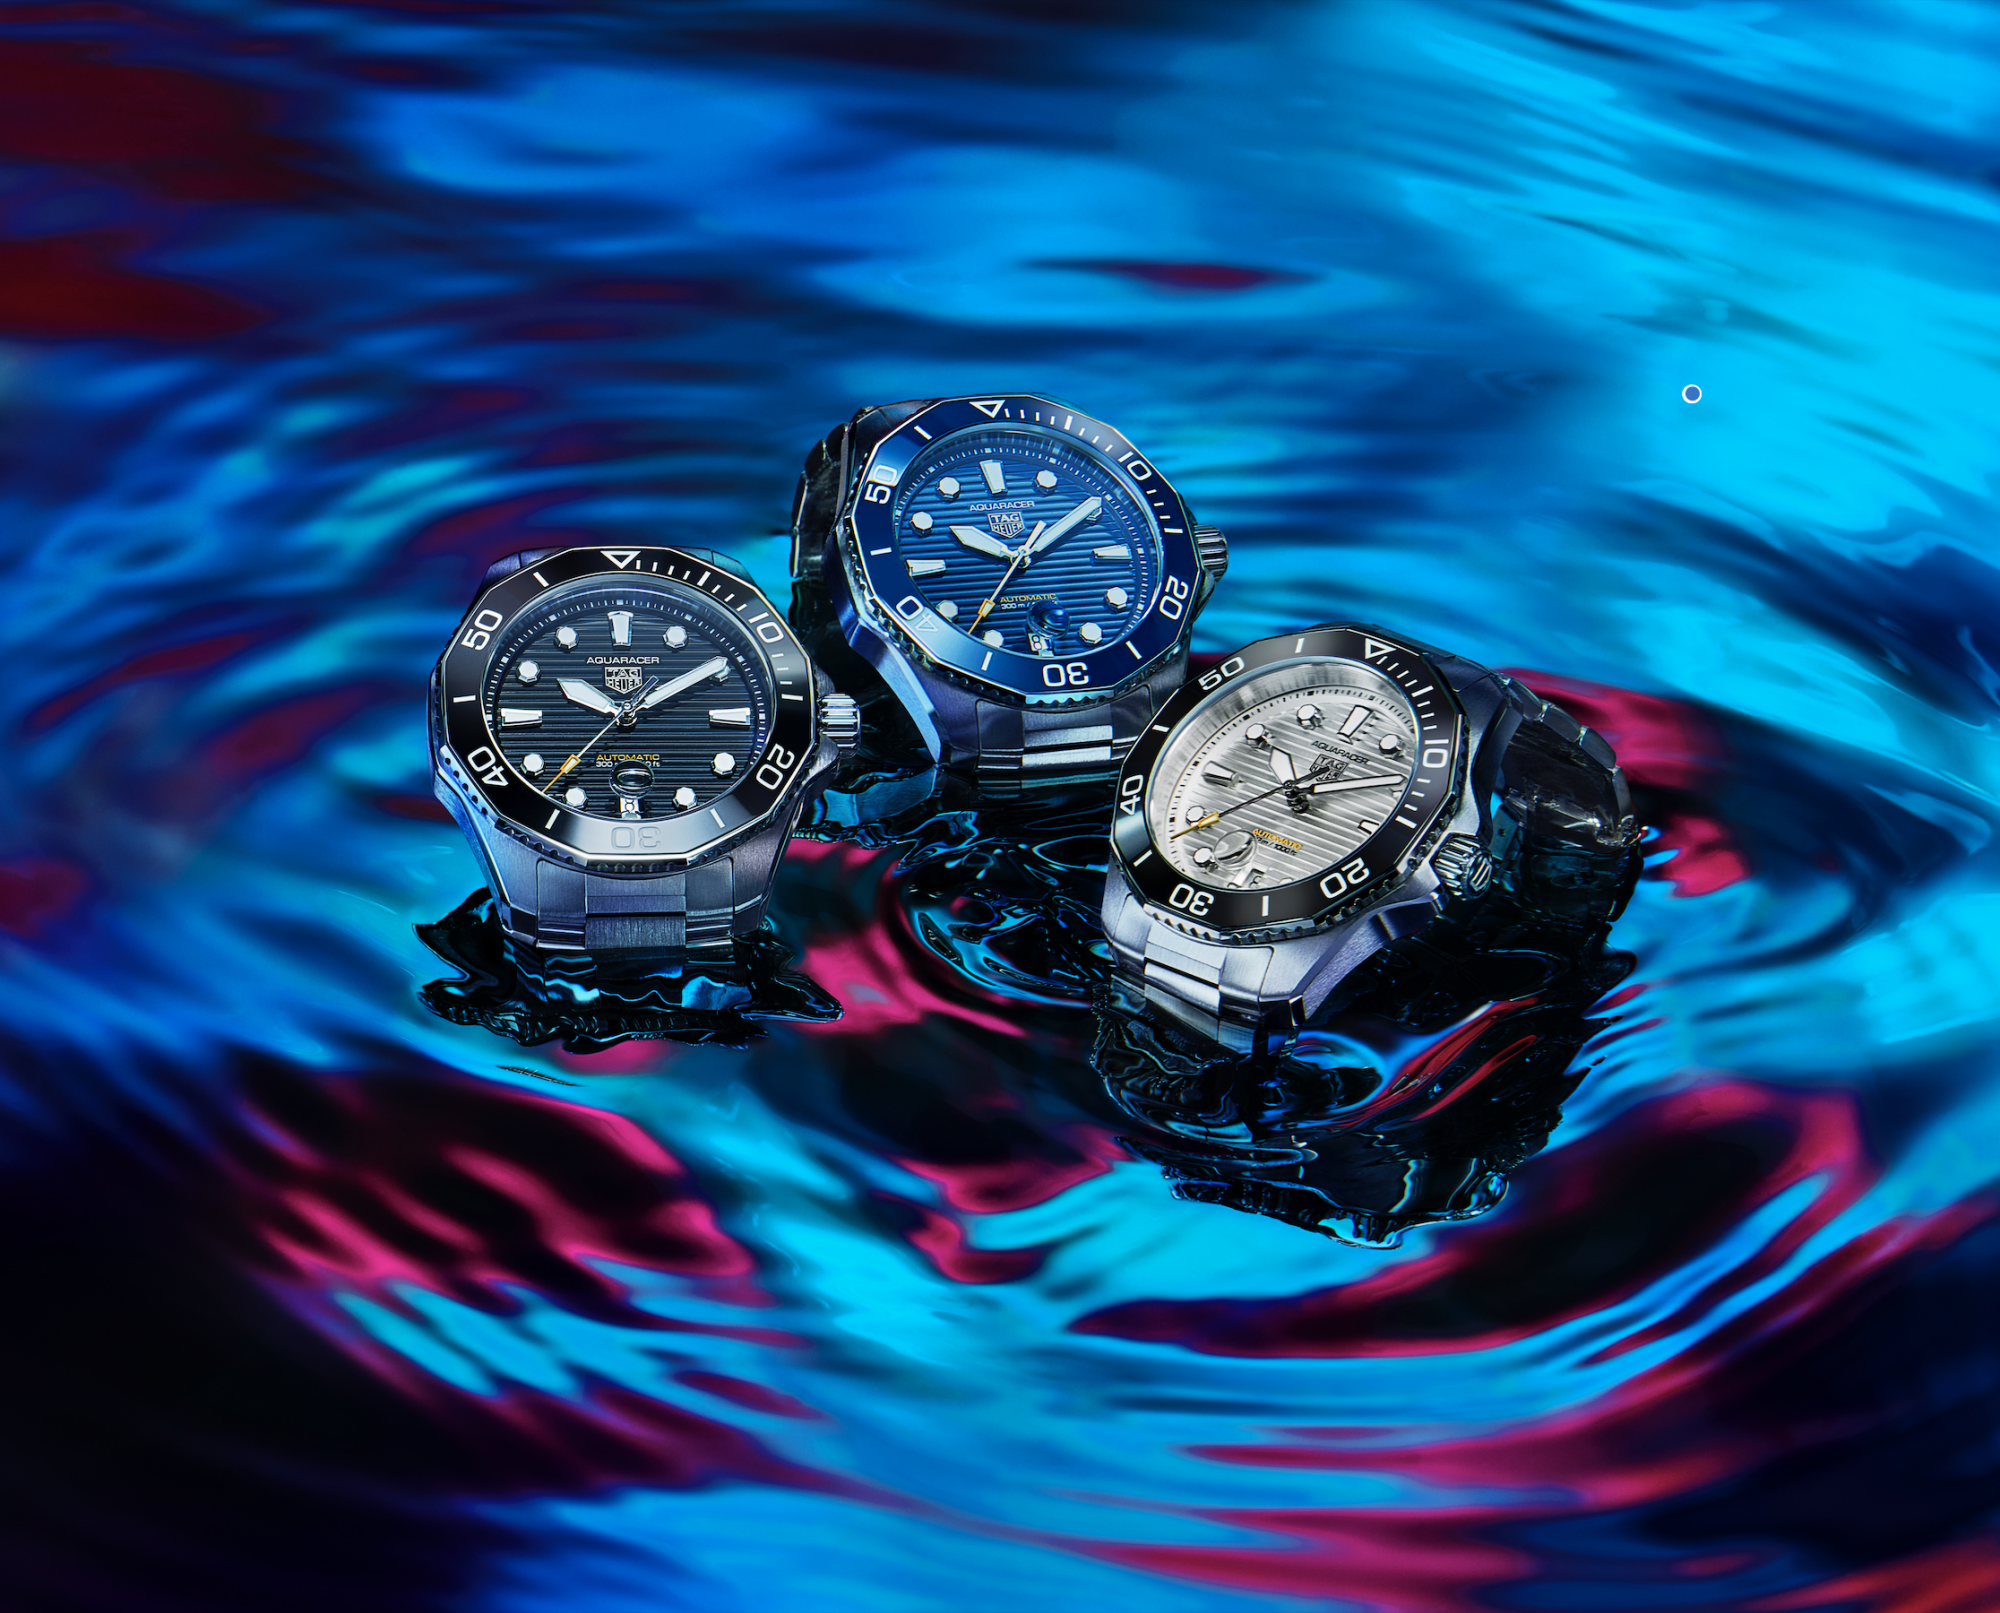 The TAG Heuer Aquaracer Professional 300: A Timepiece That Pushes Boundaries